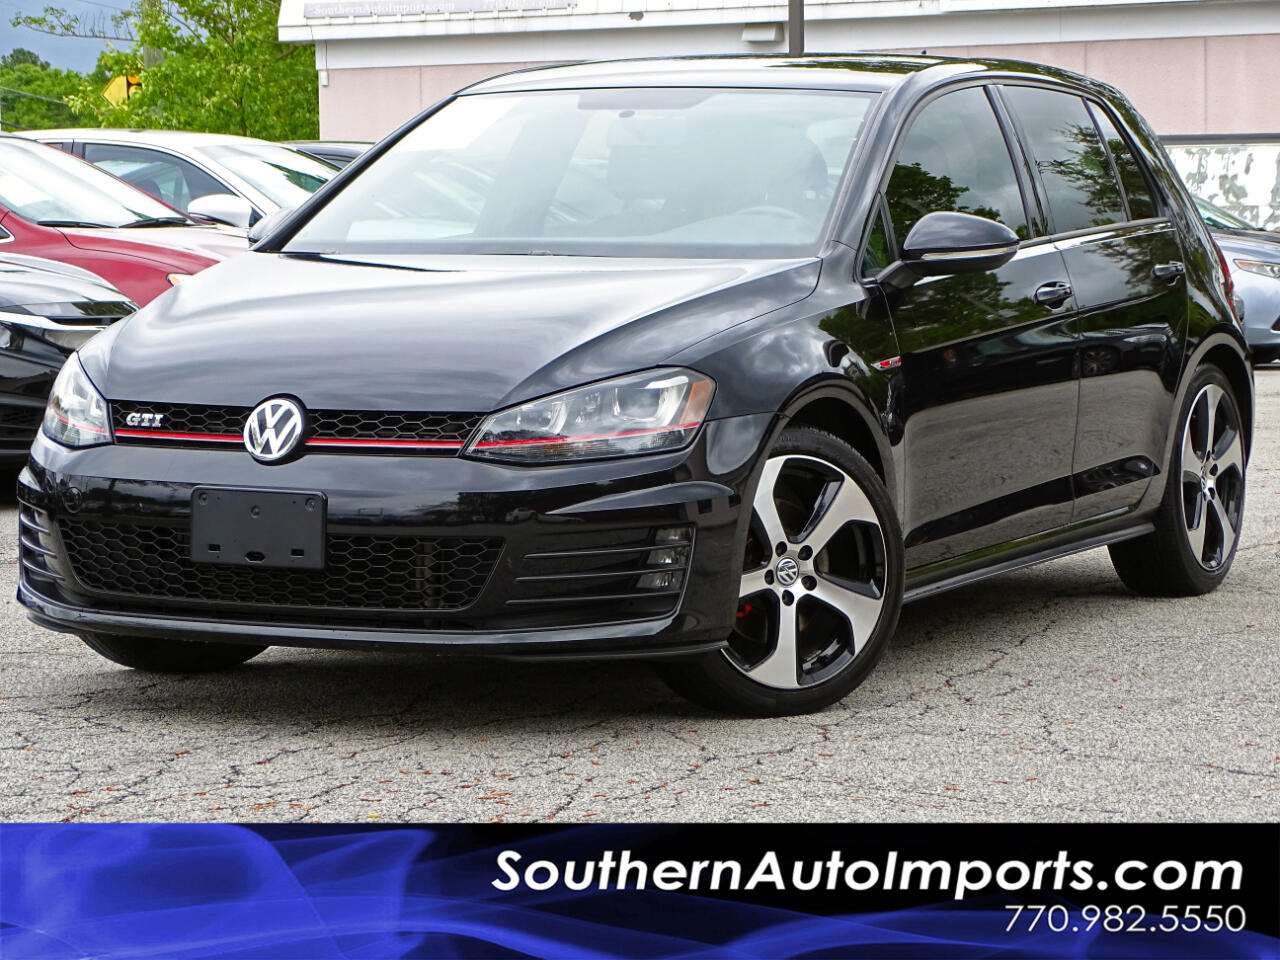 2016 Volkswagen Golf GTI S w/Lighting Pkg 6 speed Manual